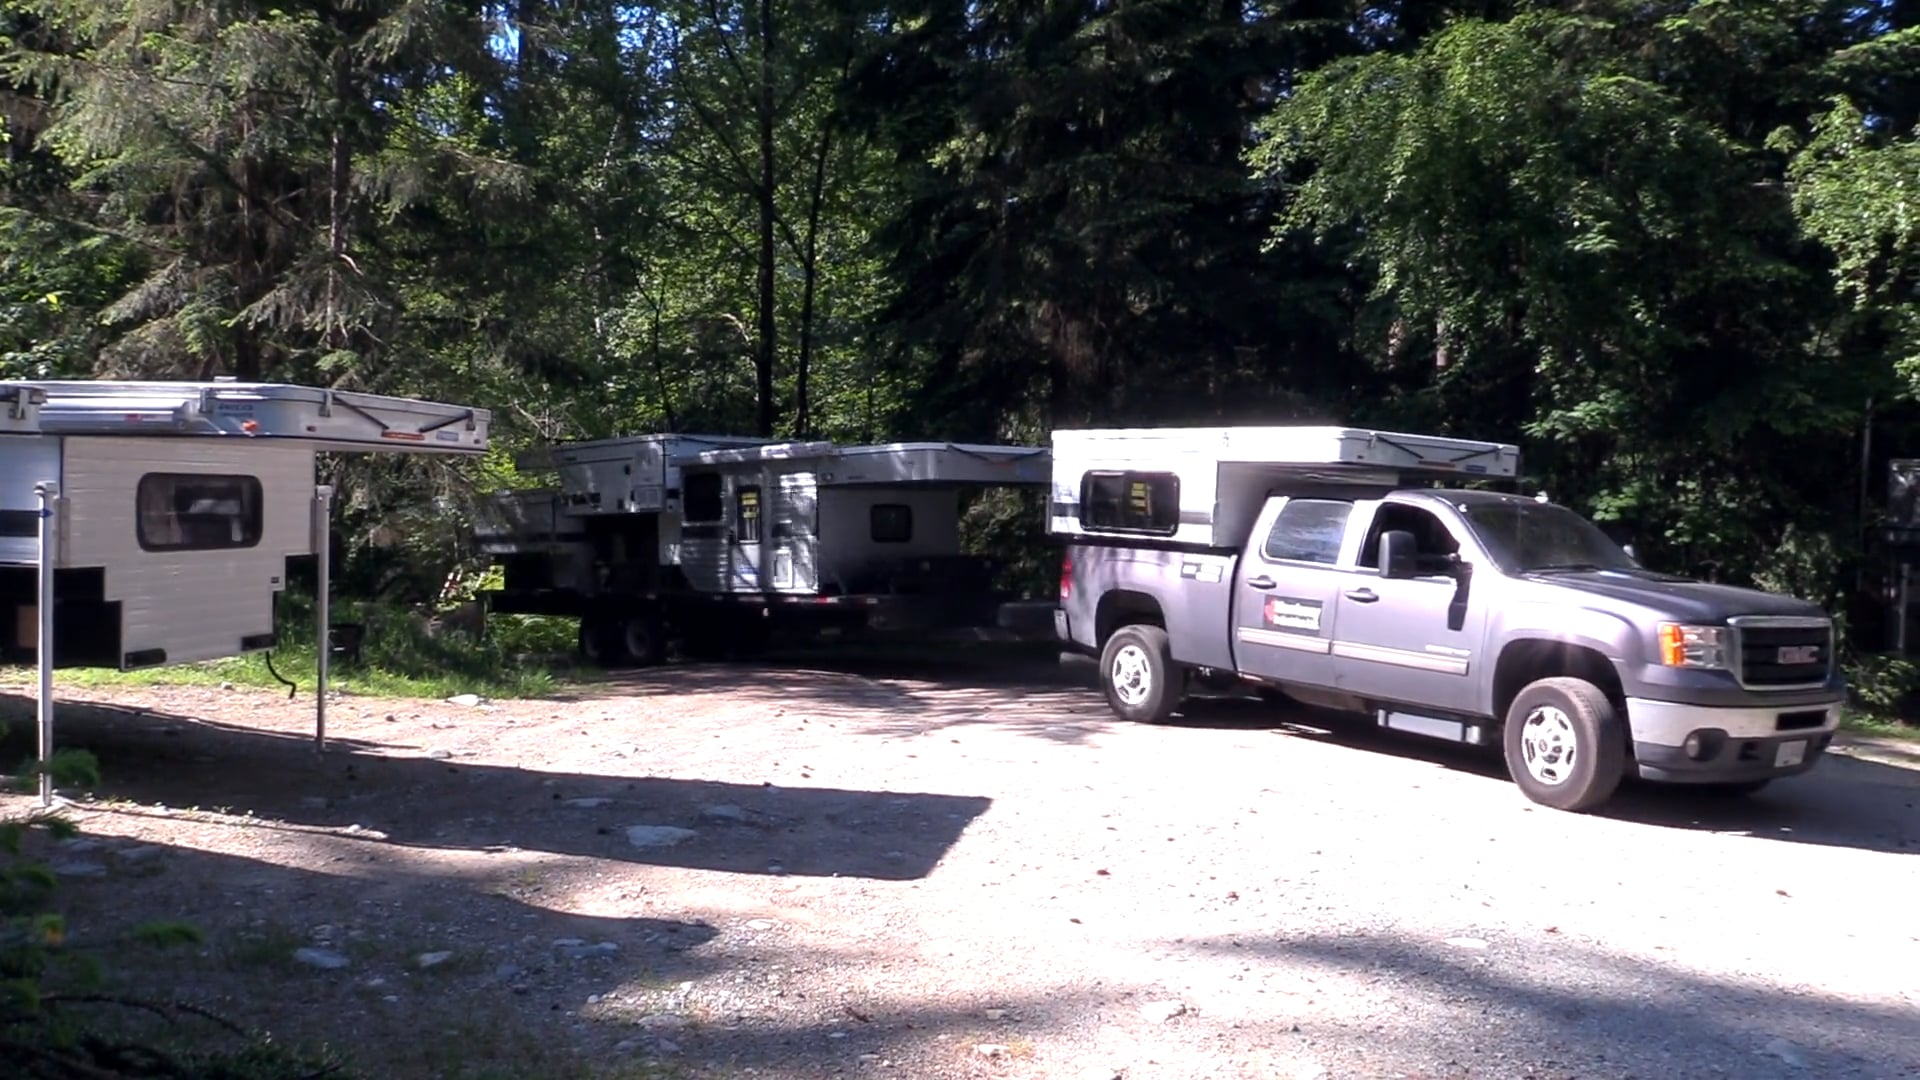 Flatbed - Returning home with the All New flatbed - Hawk Camper